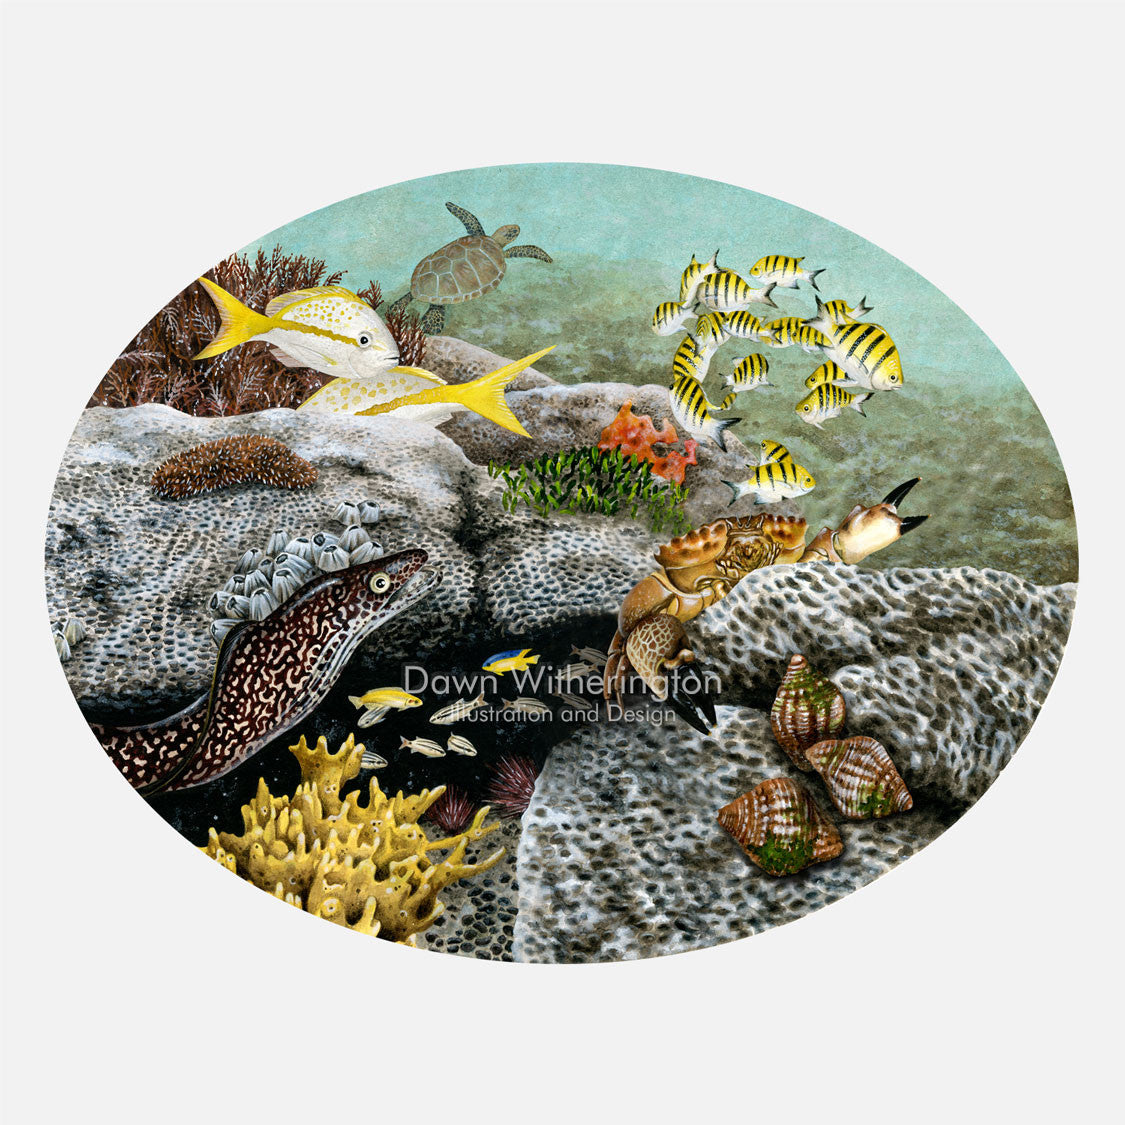 This illustration is of animals associated with wormrock (made by Sabellariid worms). The art features a stone crab, an eel, rock snails, several fish, and other critters living around wormrock.